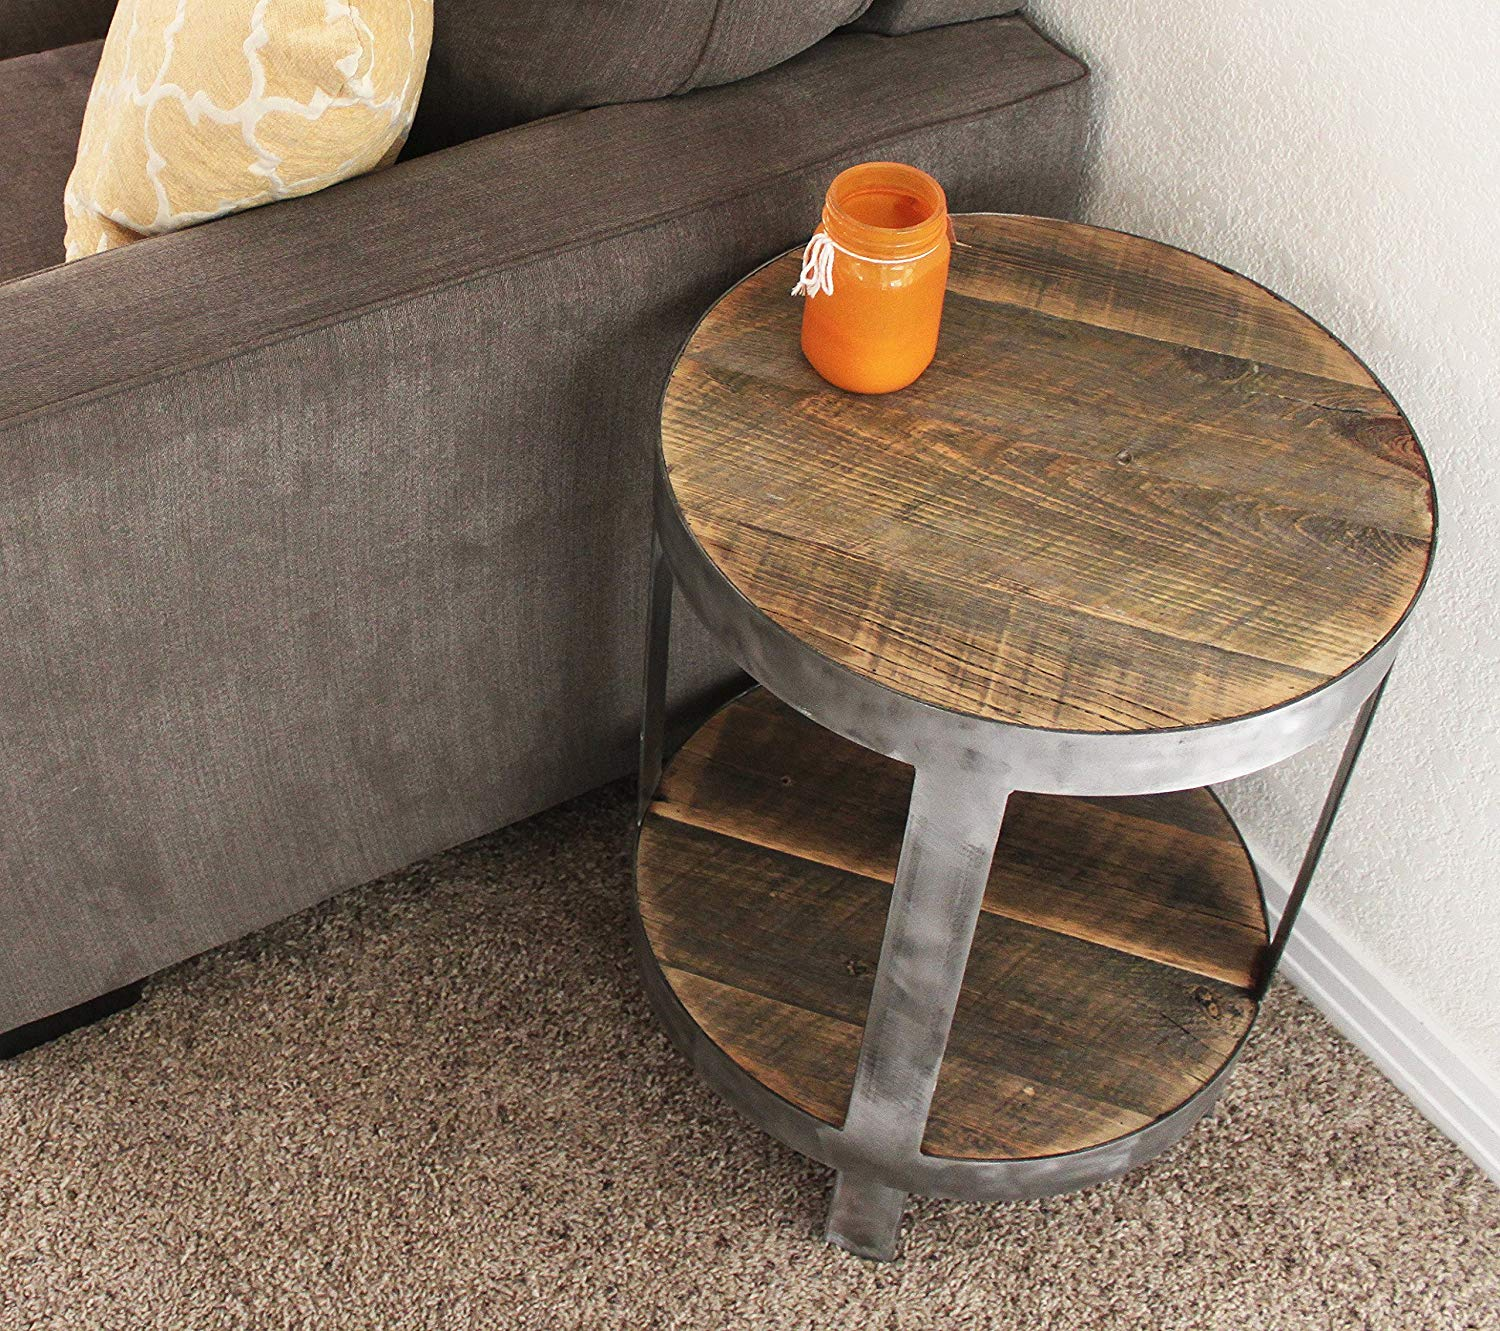 probably perfect awesome reclaimed wood coffee and end tables round side table nightstand handmade vintage baker furniture brown couch pillows with baskets underneath foot